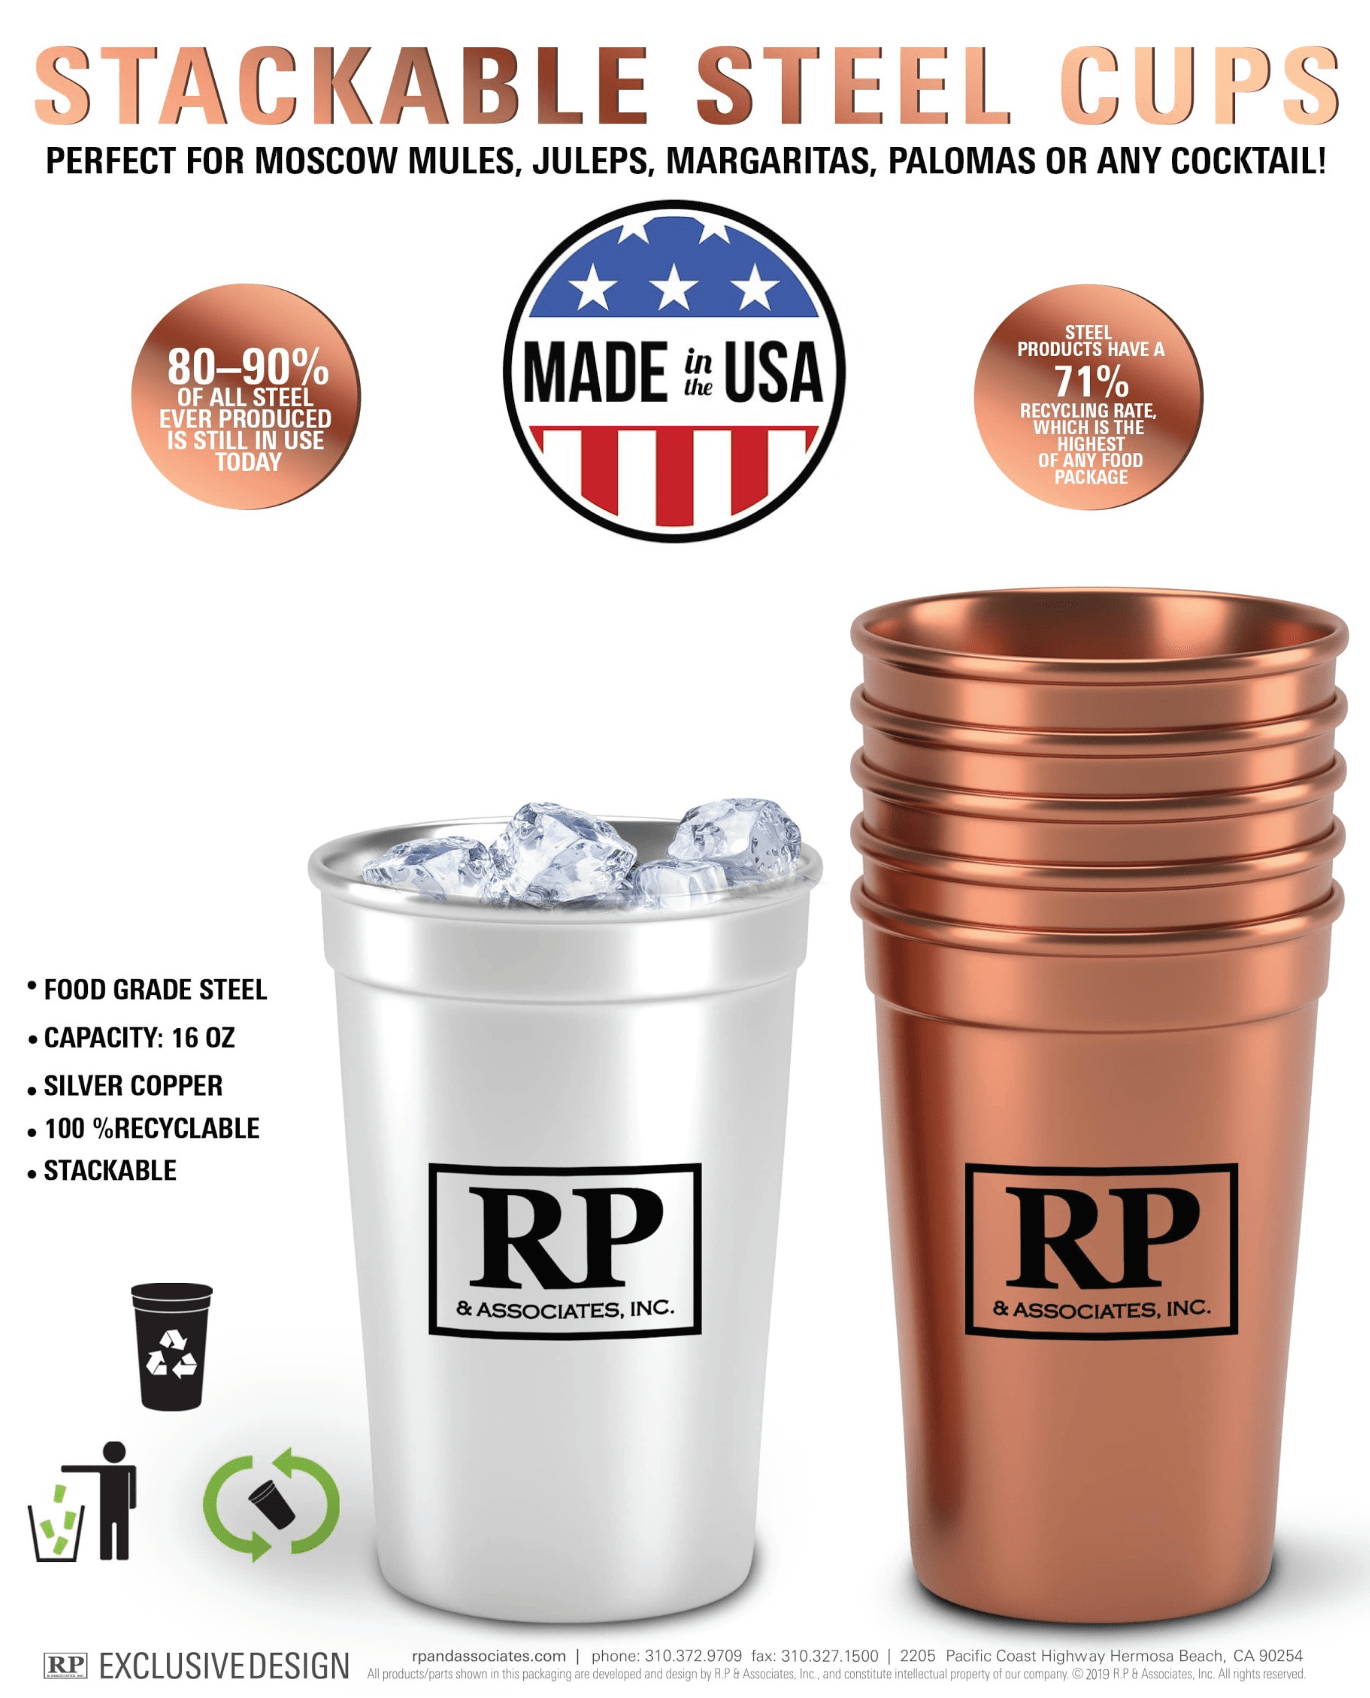 sustainable steel cups made in the usa